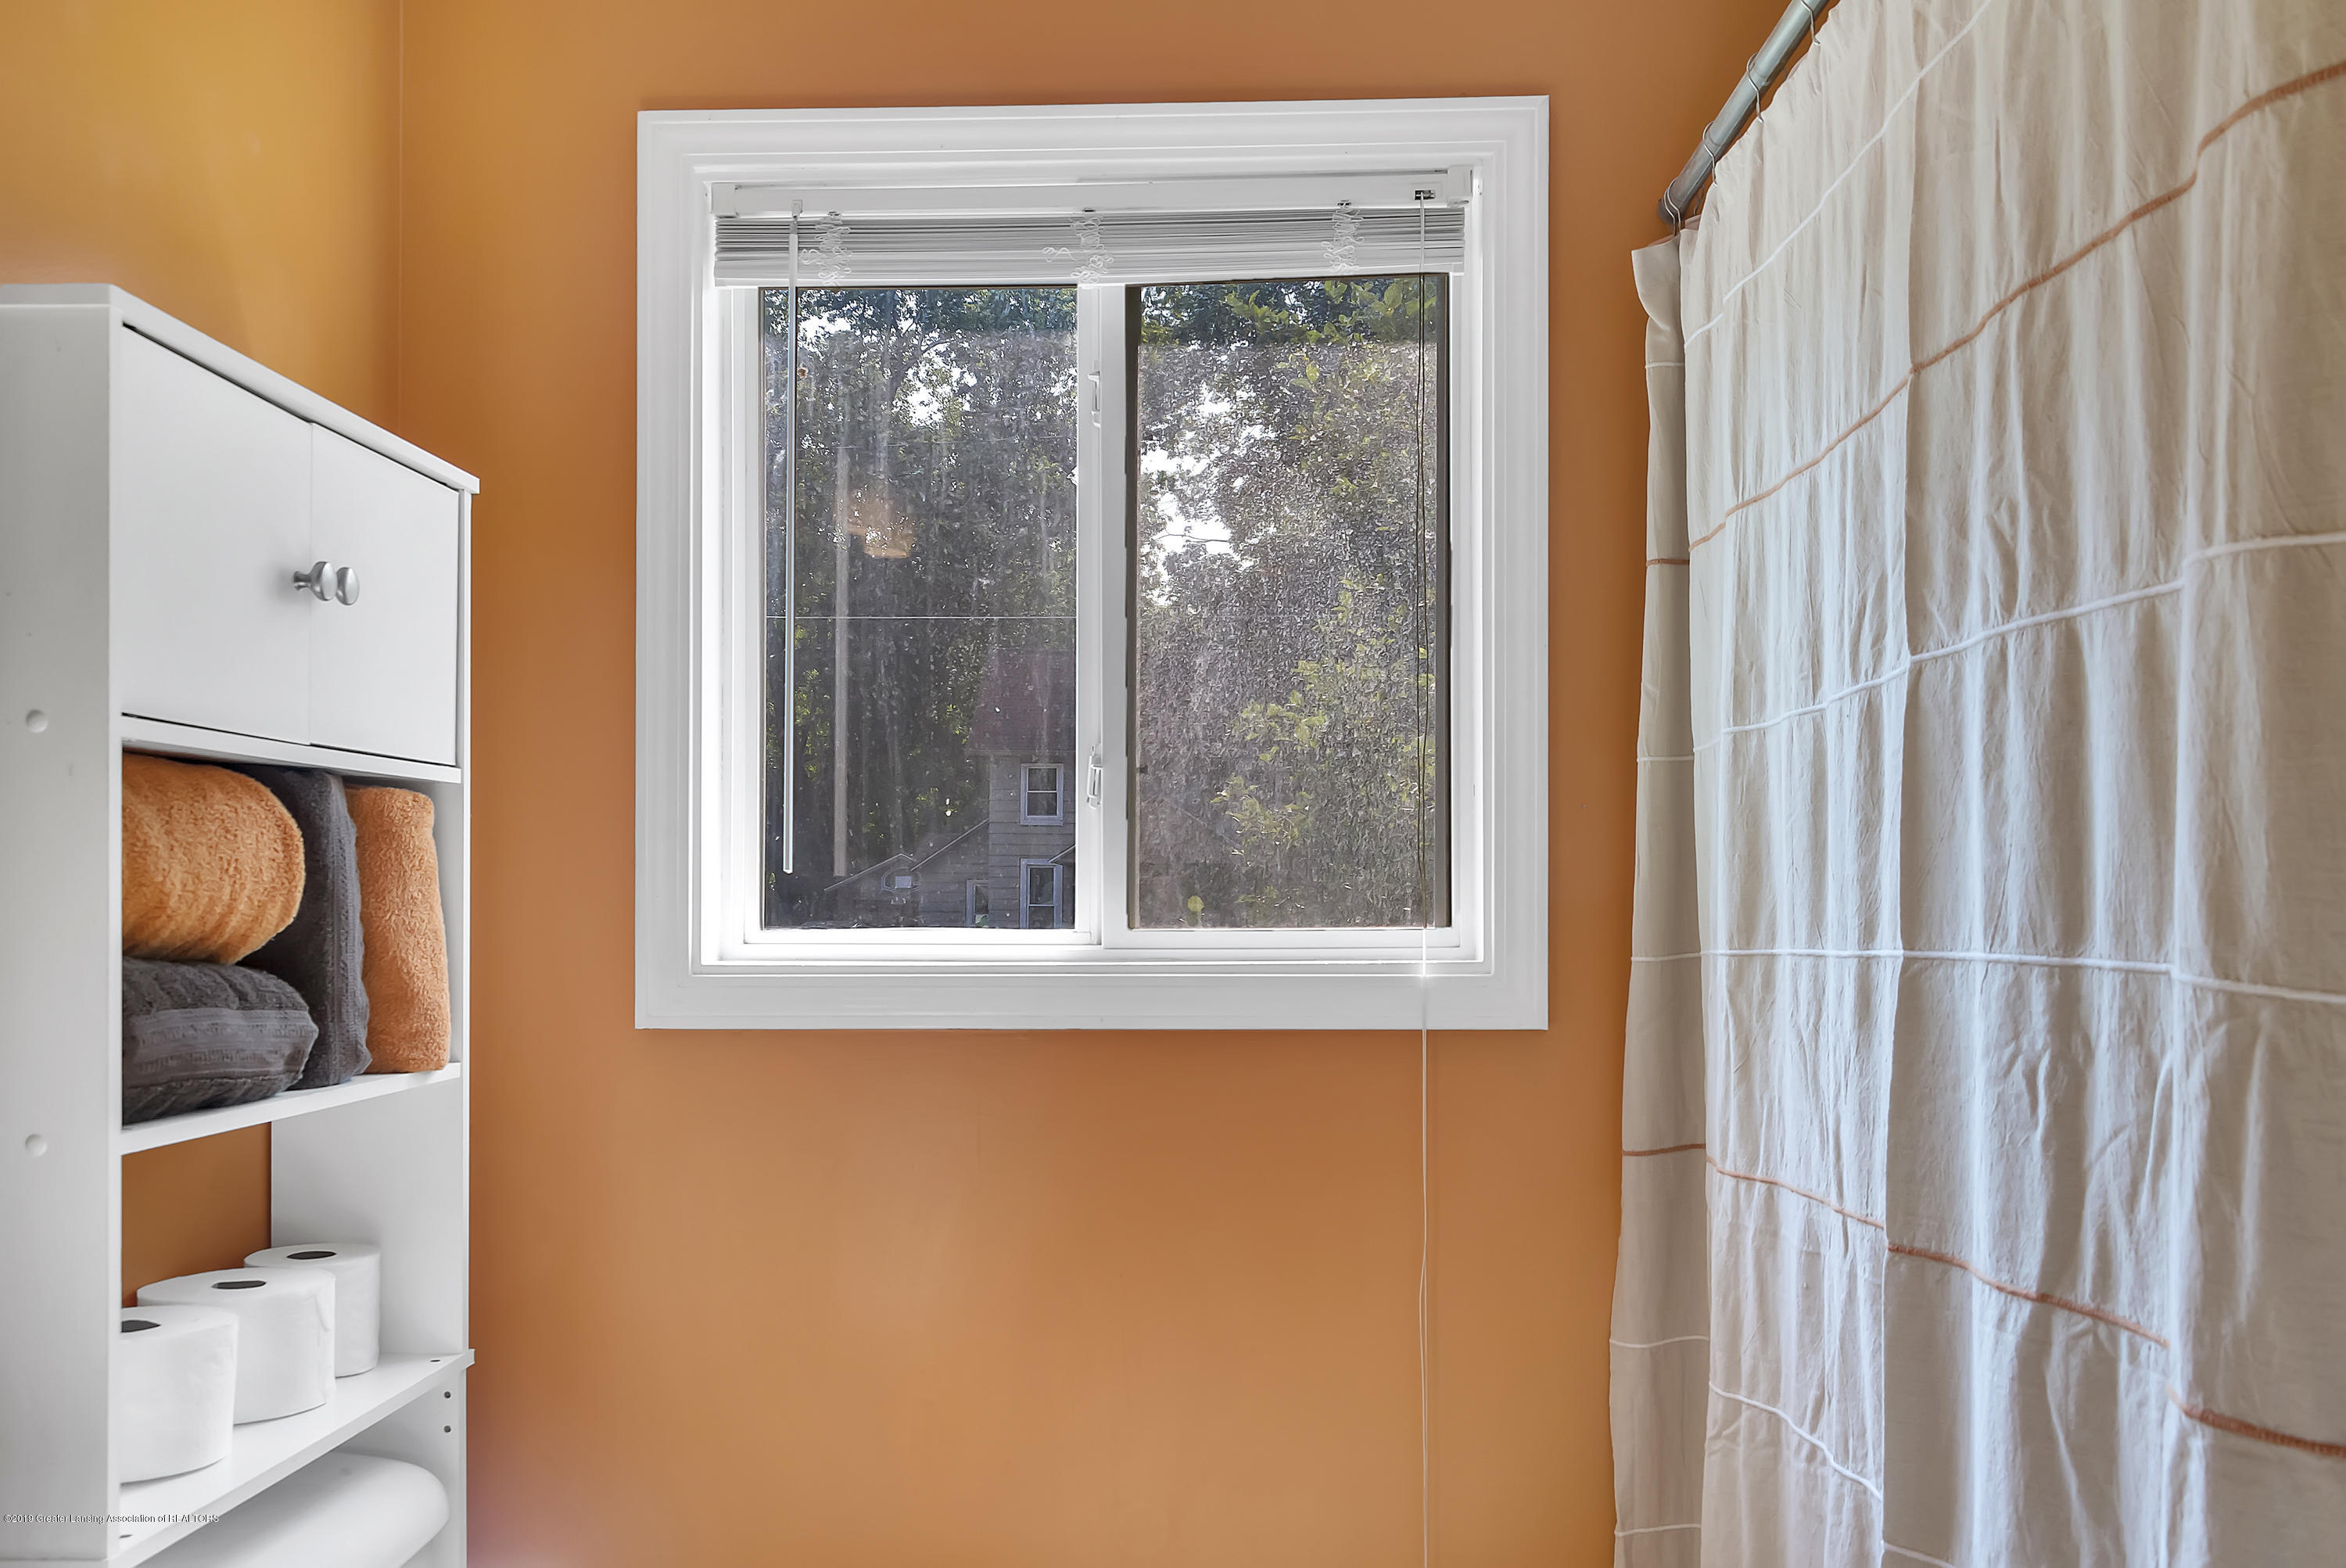 619 Forest St - 619-Forest-St-Charlotte-Mi-48113-windows - 21